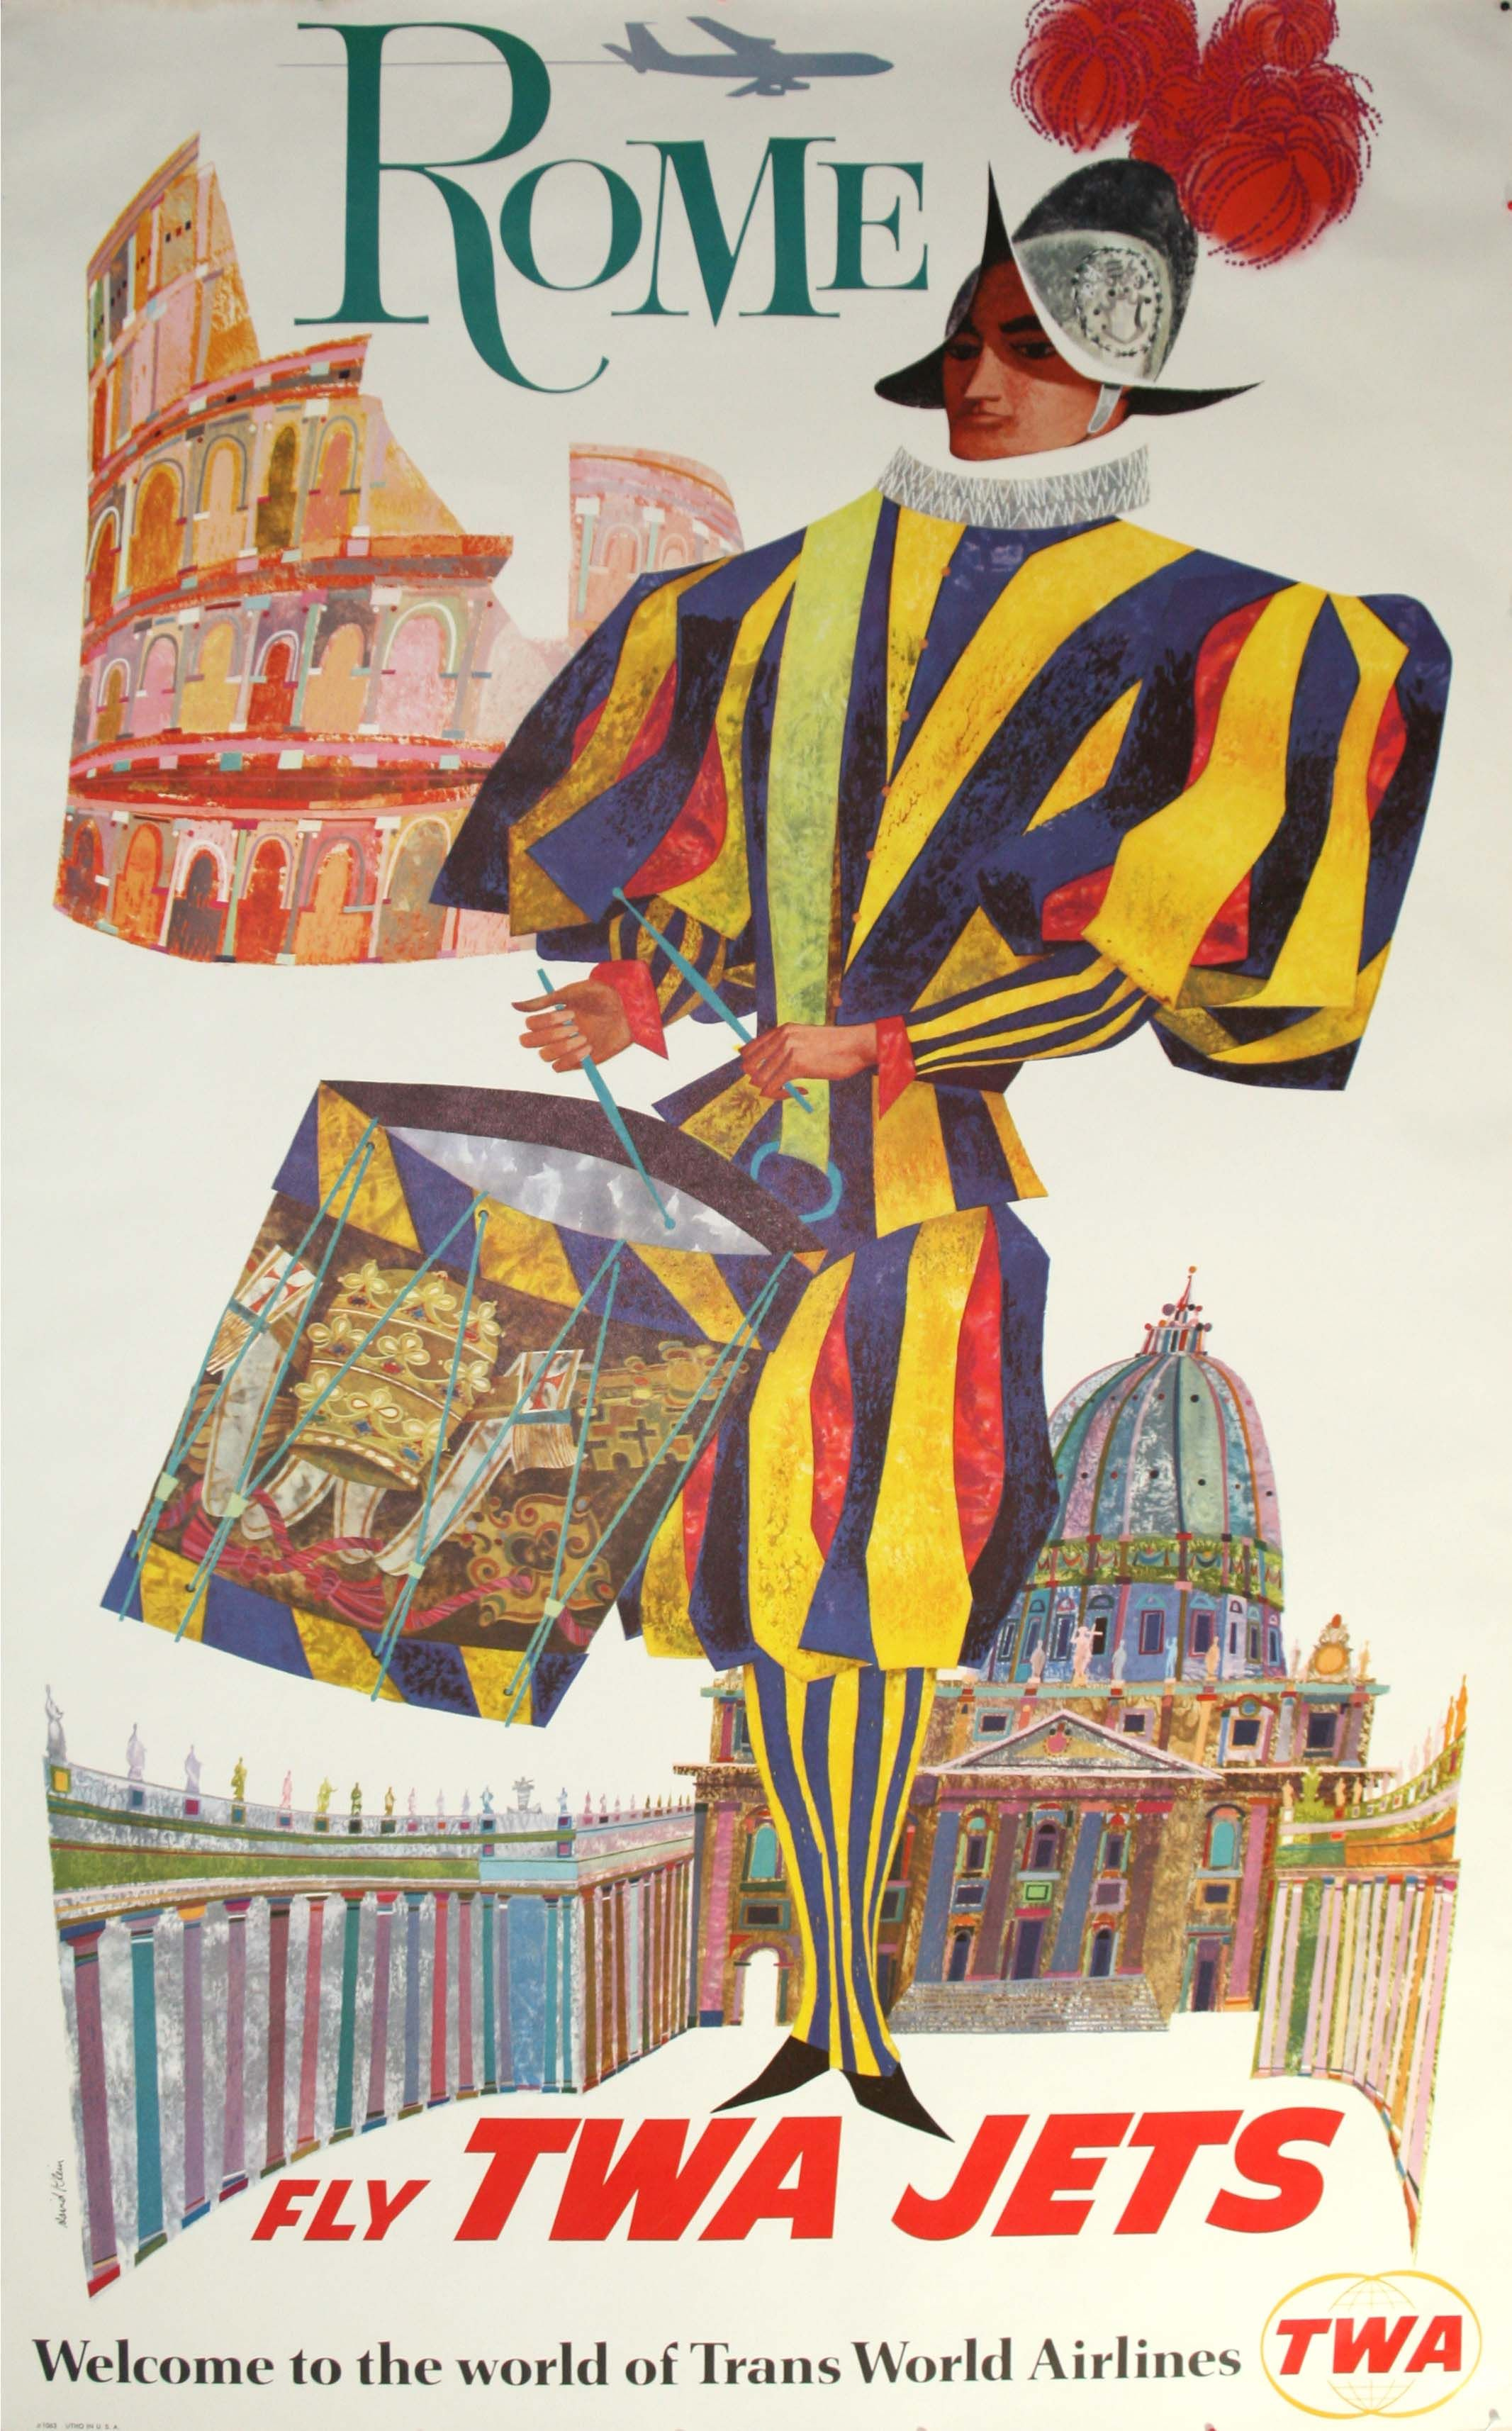 Rome Fly TWA, 1960 - original vintage poster by David Klein listed on AntikBar.co.uk